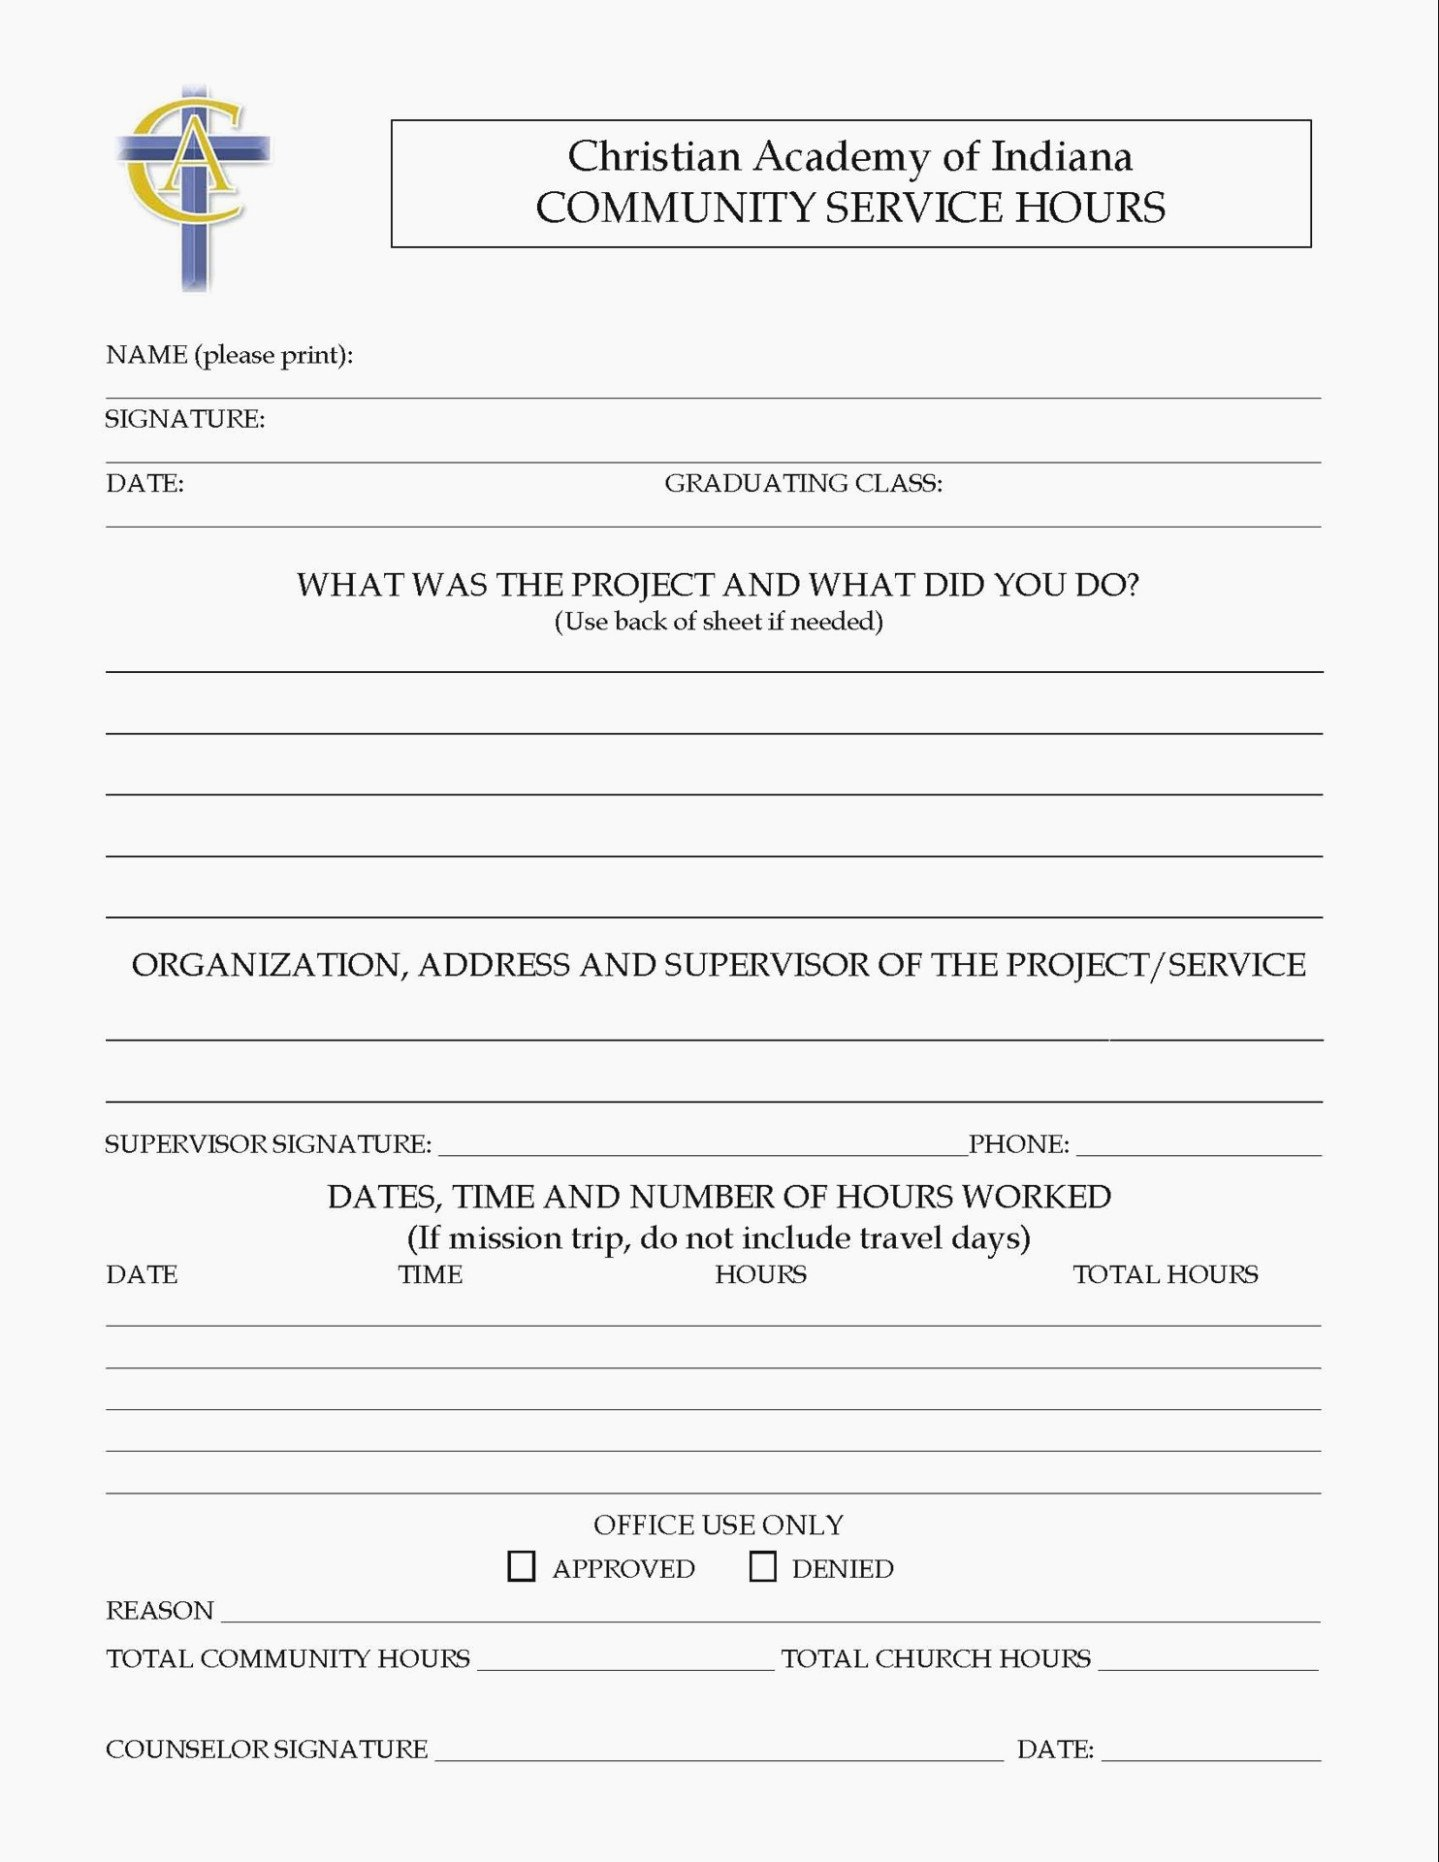 Community Service Hours form Template Elegant What S so Trendy About Tn